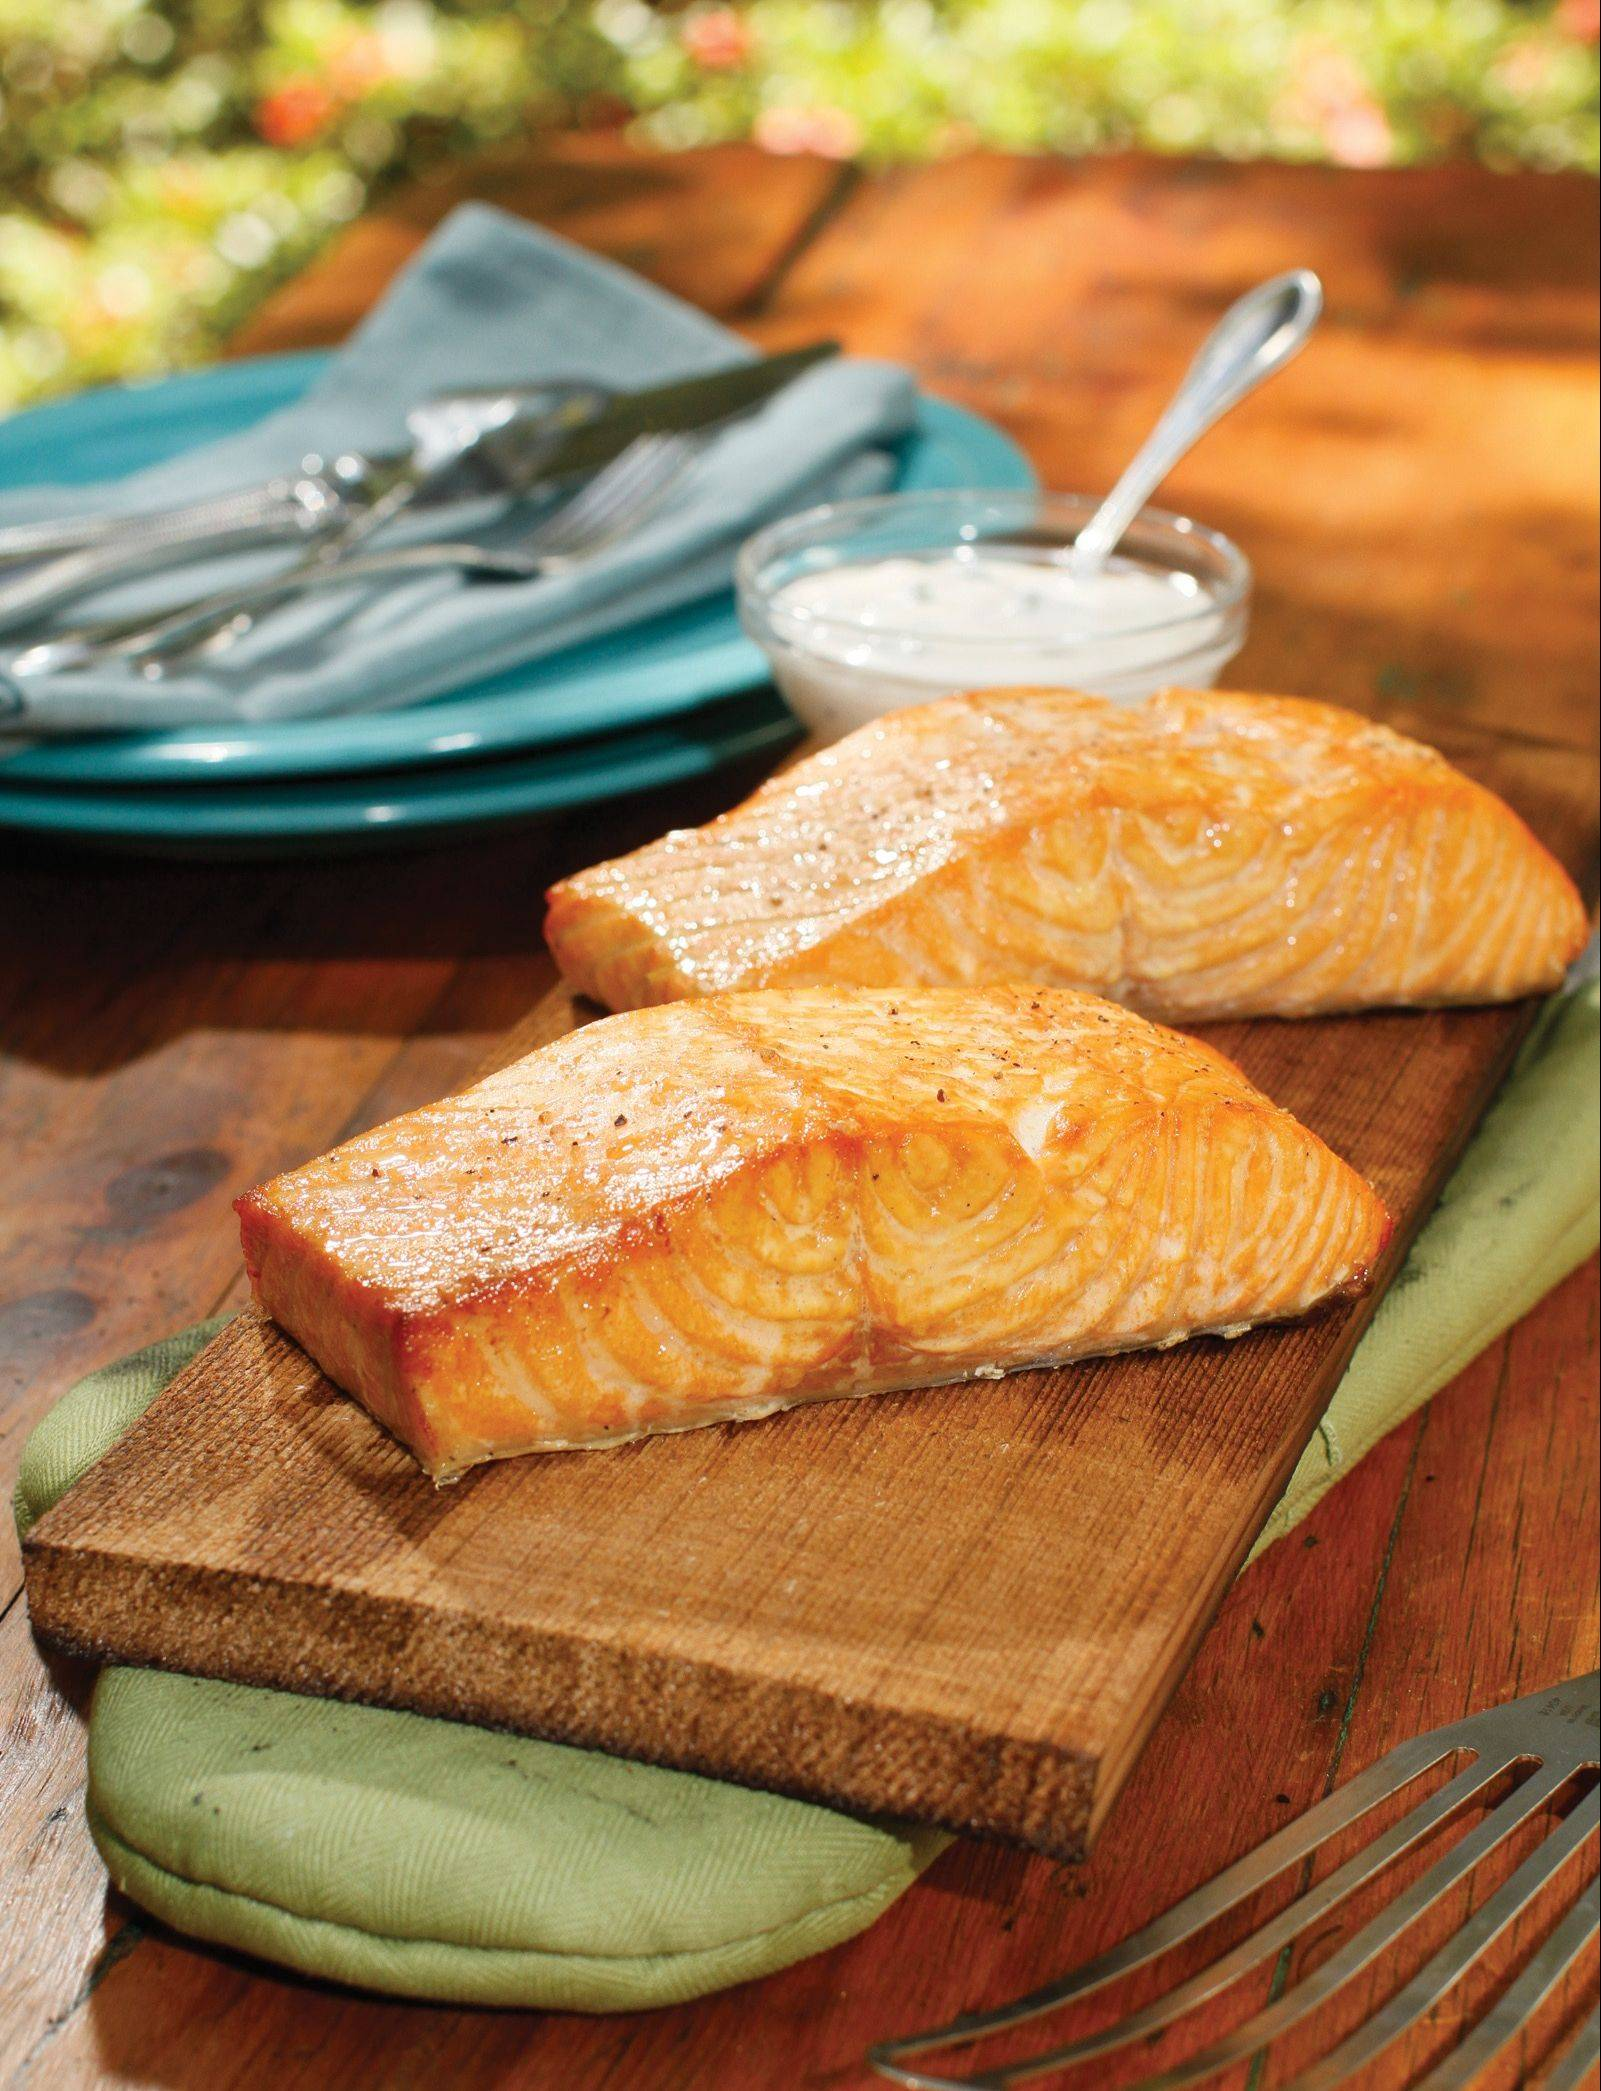 Cedar Plank Salmon with Caper Remoulade